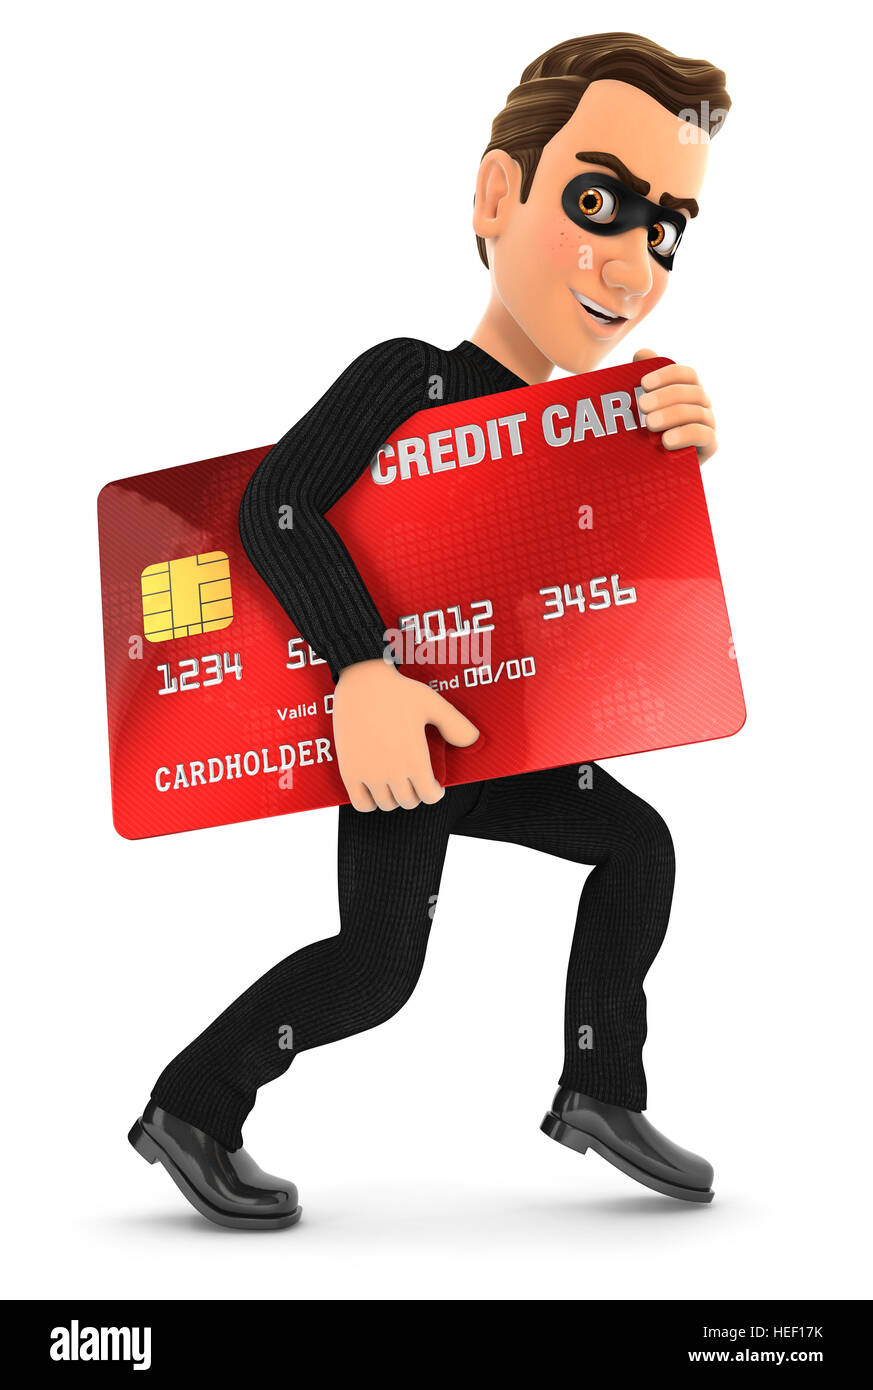 3d thief with a stolen credit card, illustration with isolated white background Stock Photo